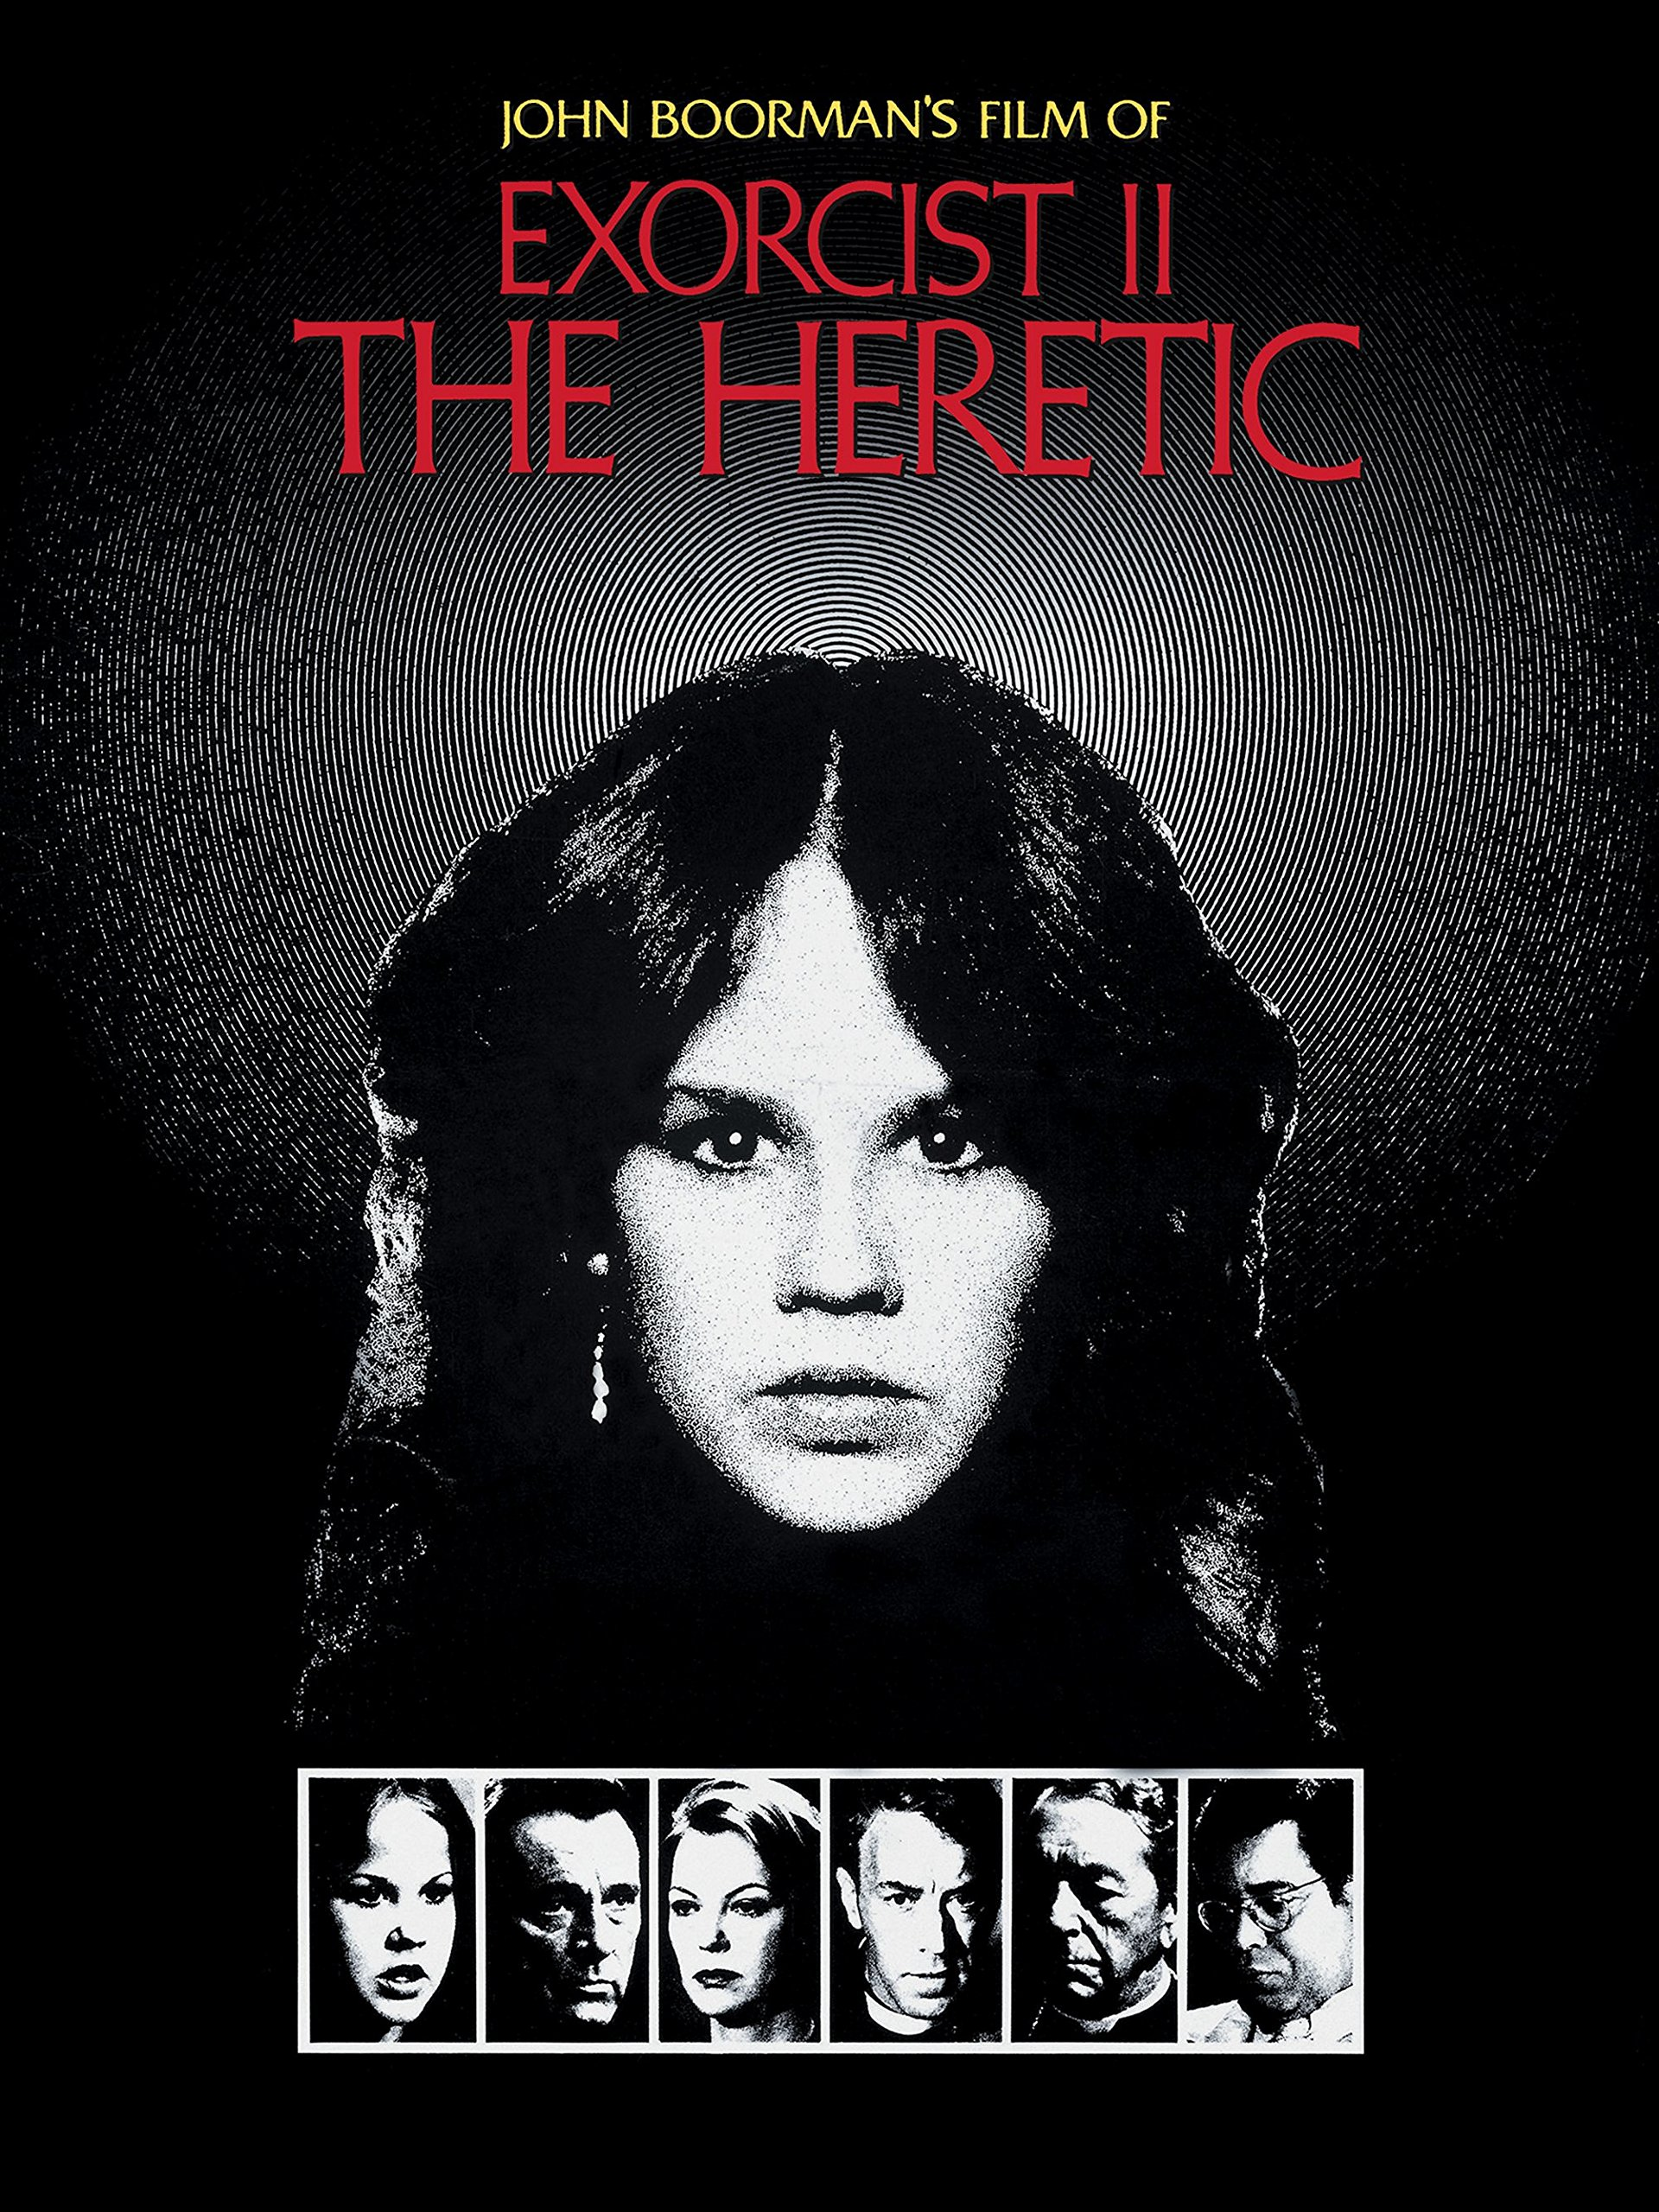 Amazon.com: Watch The Exorcist 2: The Heretic (1977) | Prime Video